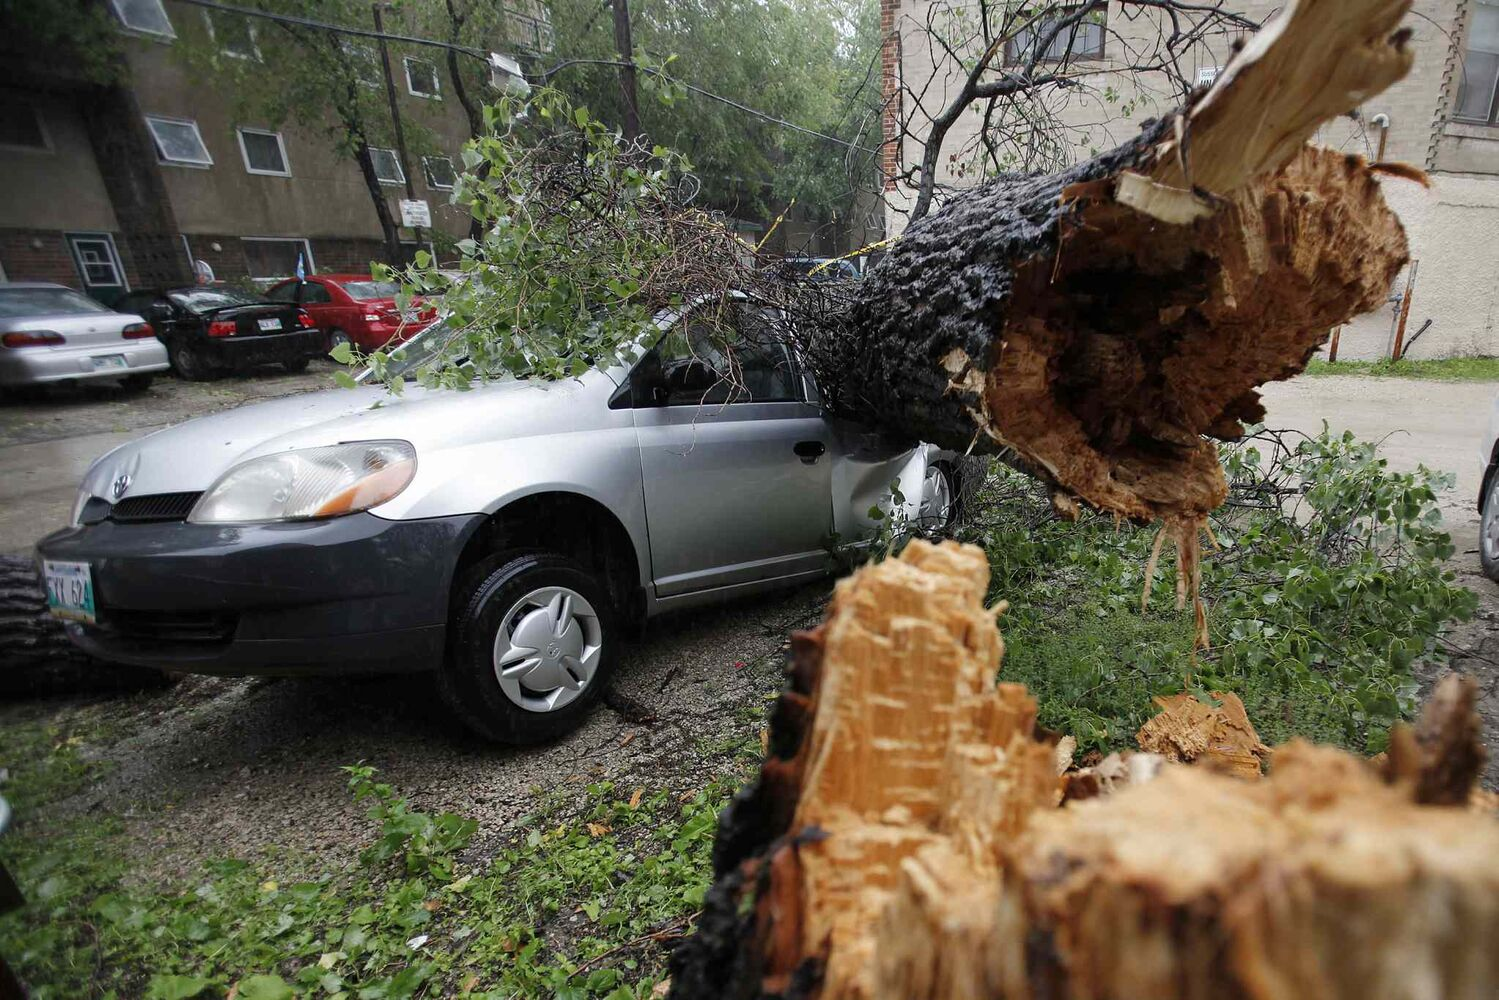 A tree blown over by strong winds crashes through the roof of a parked car in Winnipeg, Sunday morning, June 29, 2014.  (John Woods / The Canadian Press)